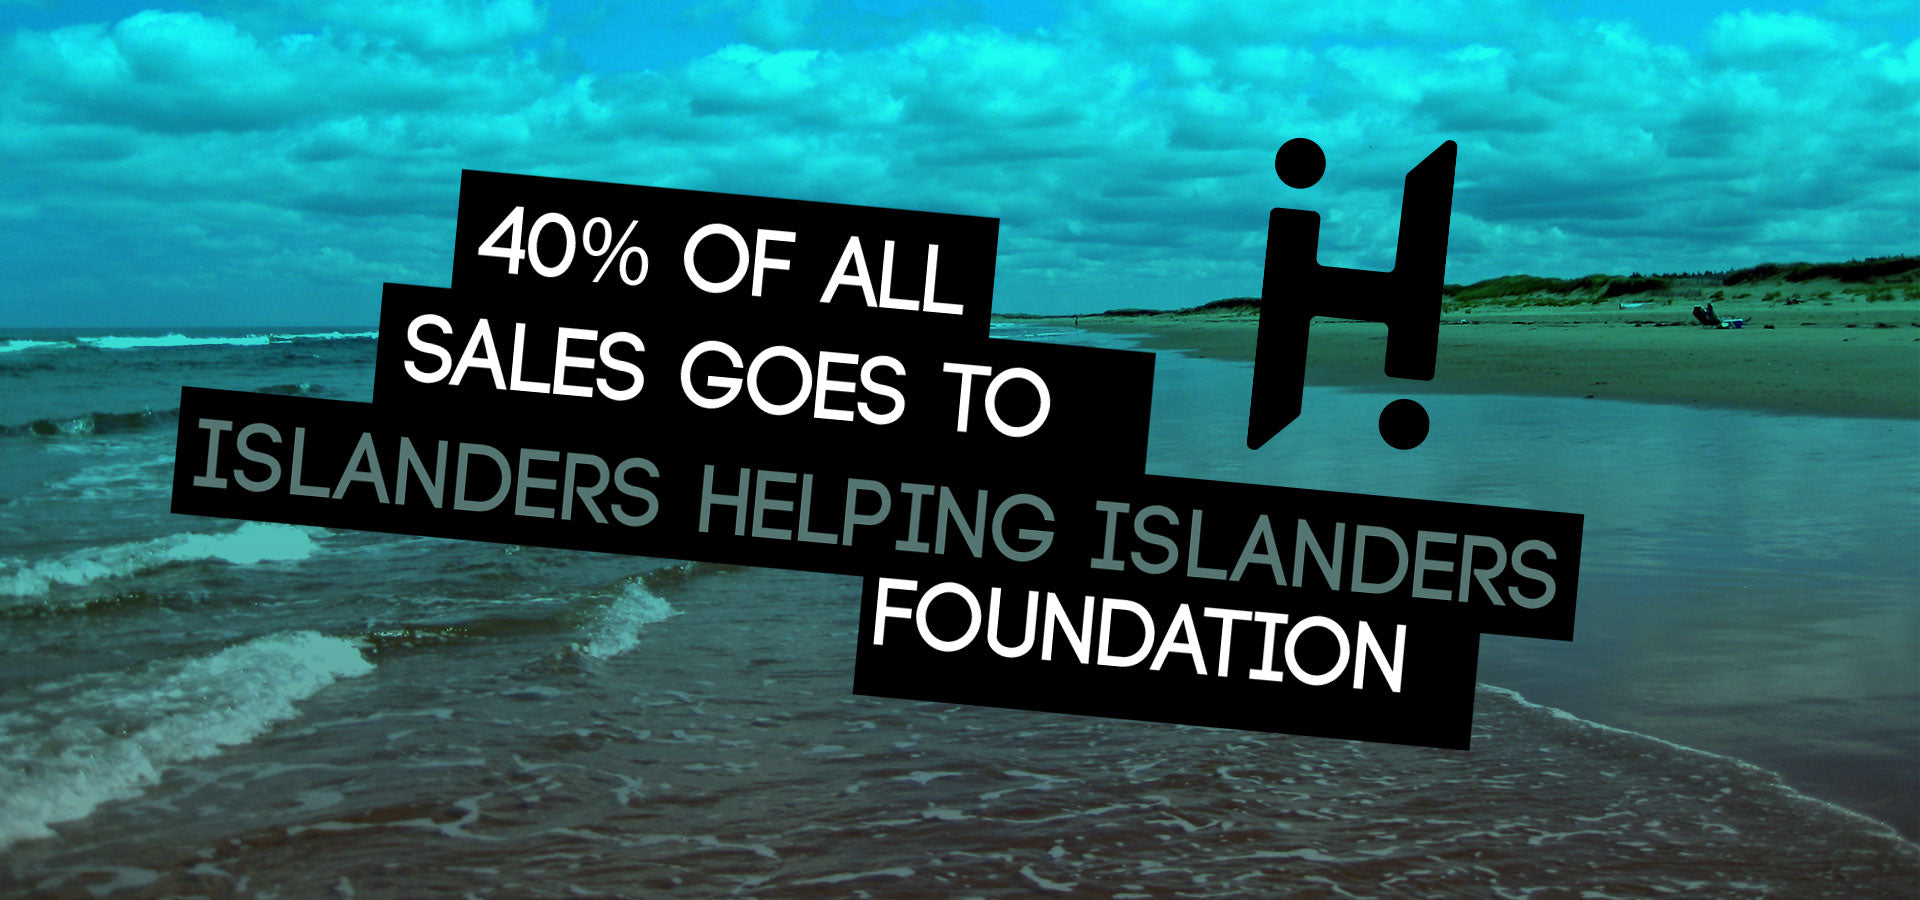 40% of sales go to support islanders helping islanders foundation